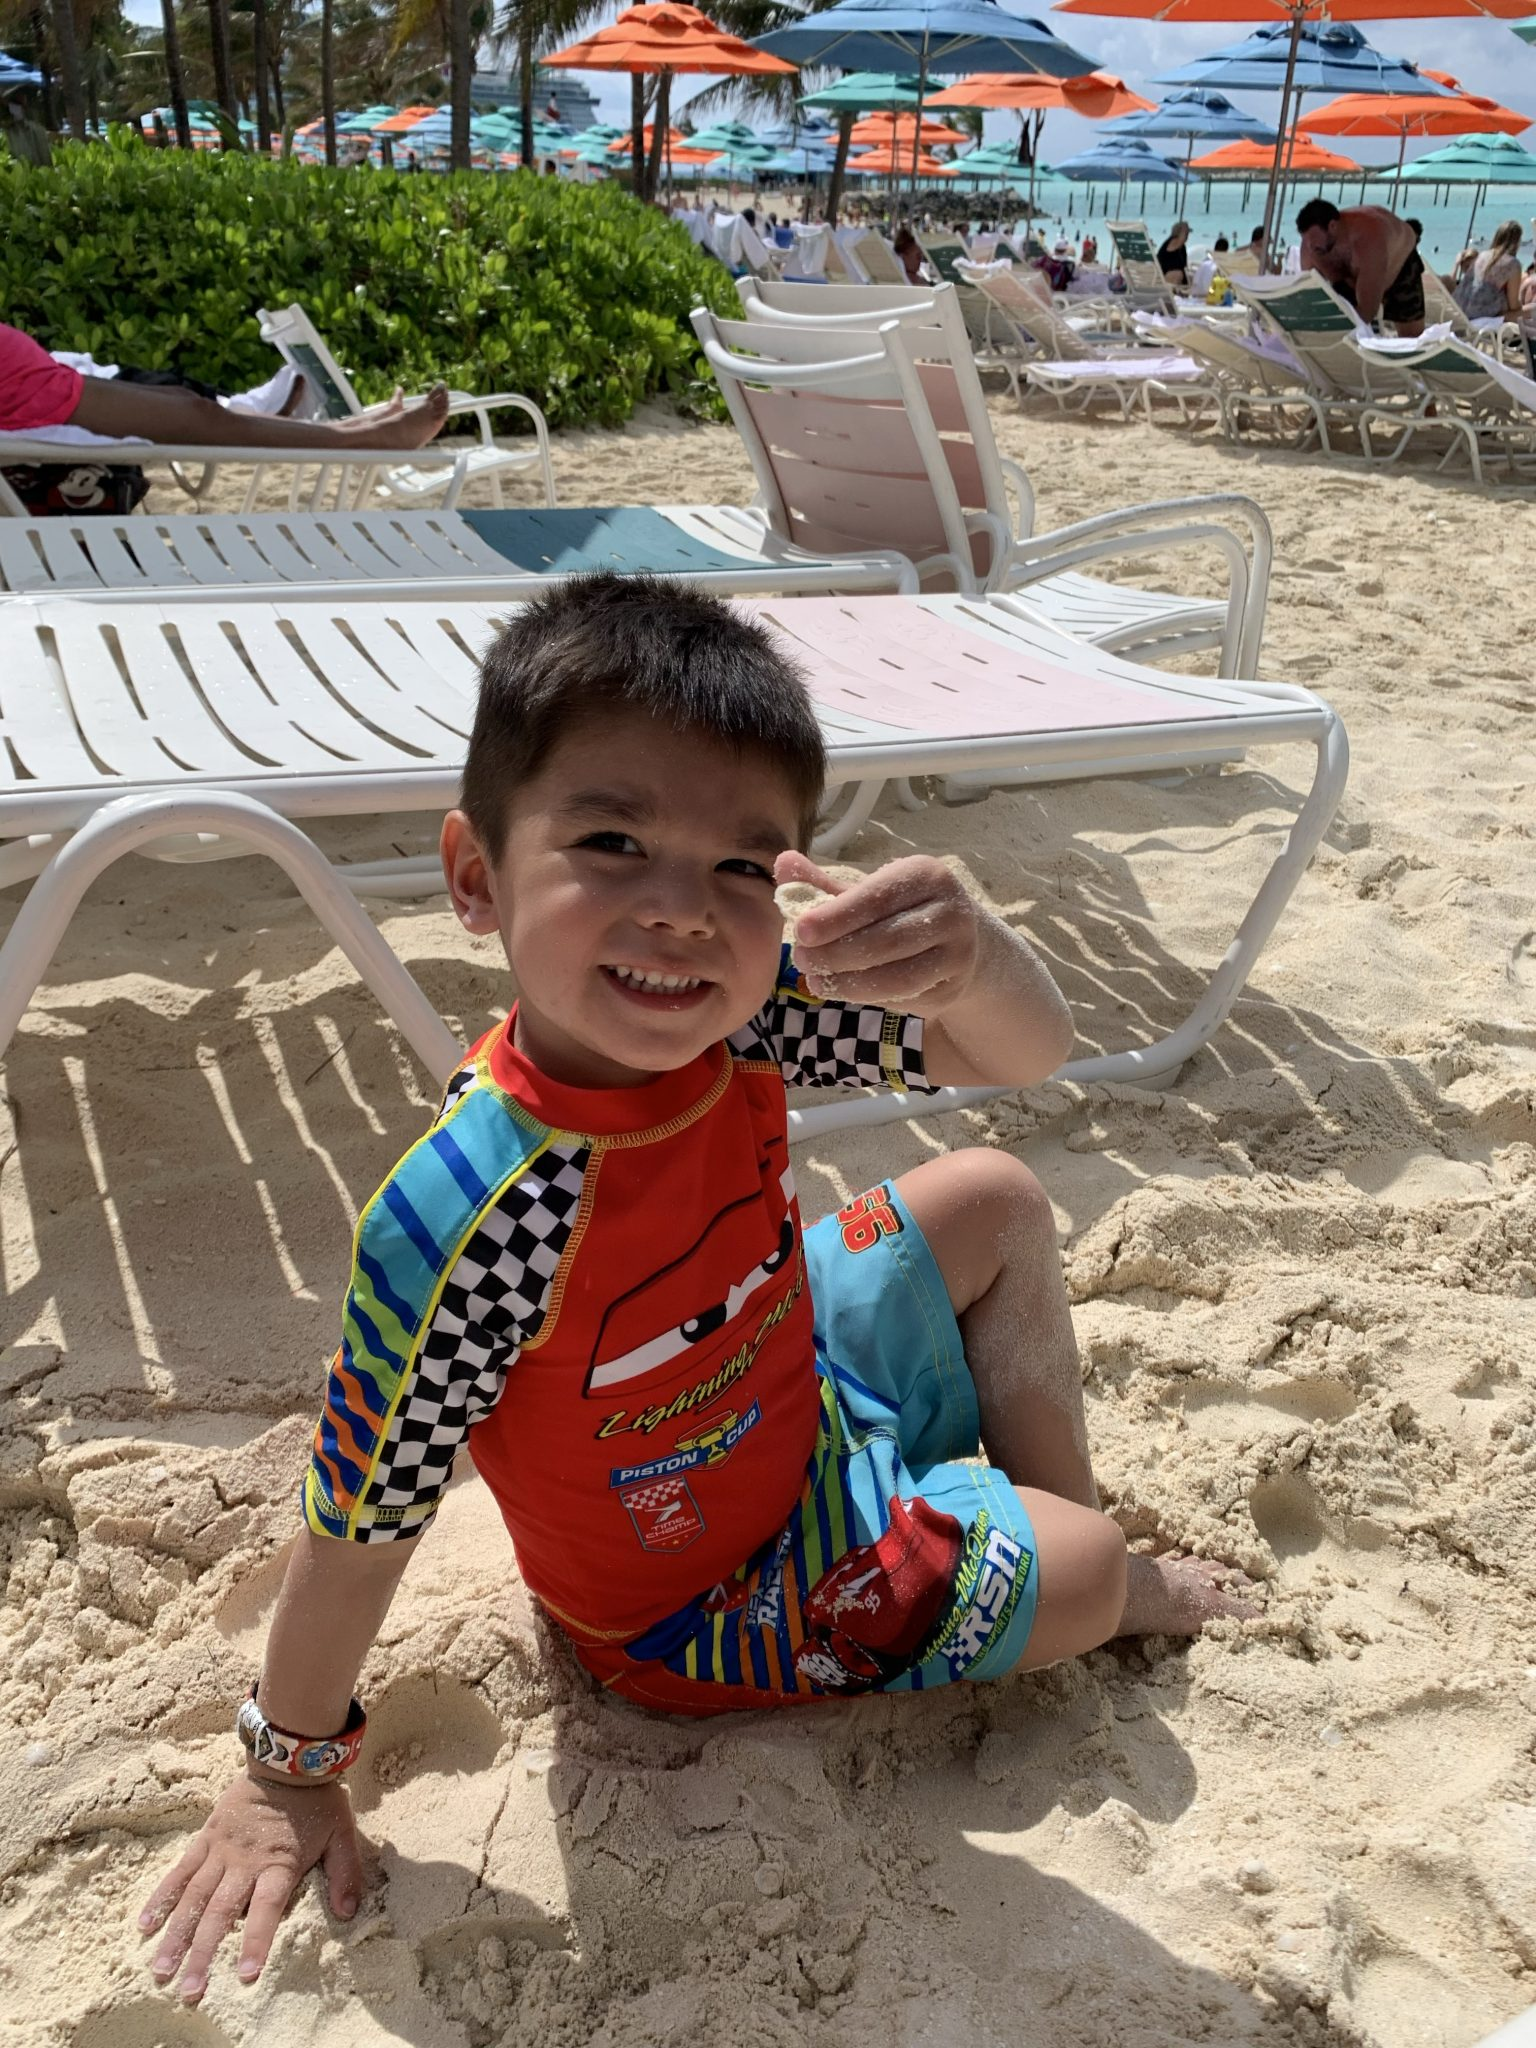 Castaway Cay Activities: a Complete Guide to Beaches and Events featured by top US Disney blogger, Marcie and the Mouse: Boy holding up a shell at a Castaway Cay beach